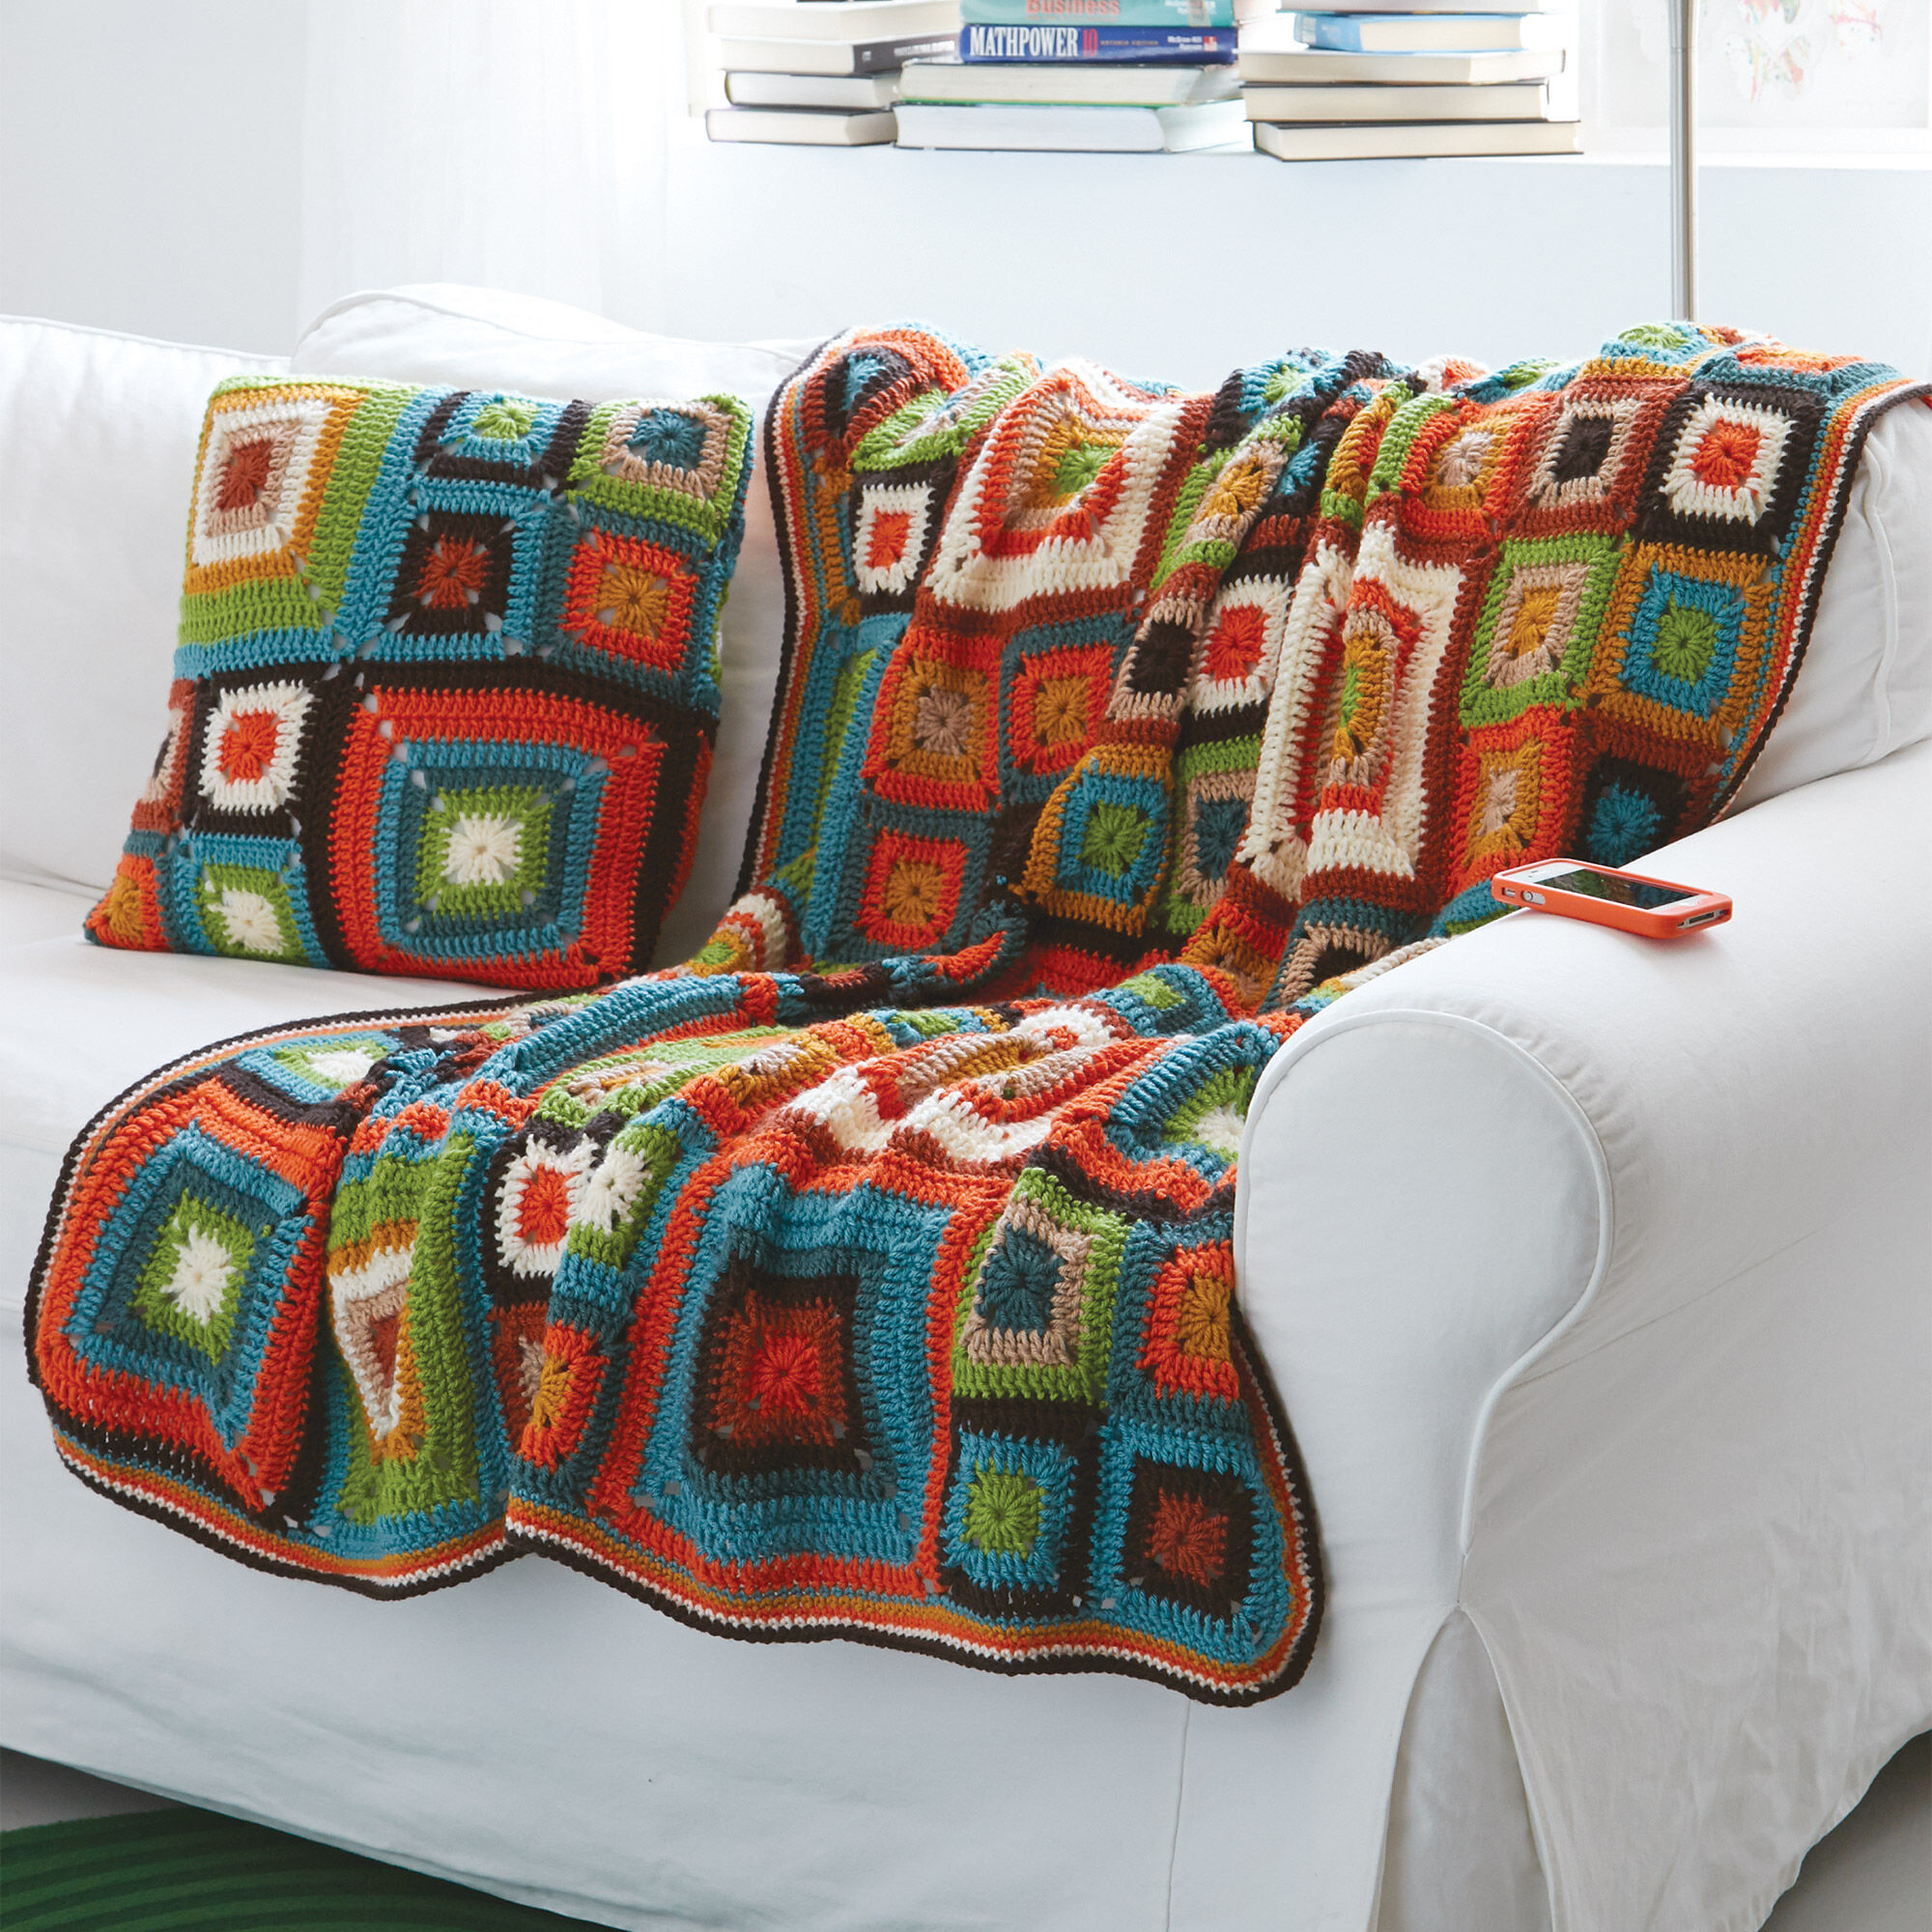 patons bright squares blanket and pillow set yarnspirations